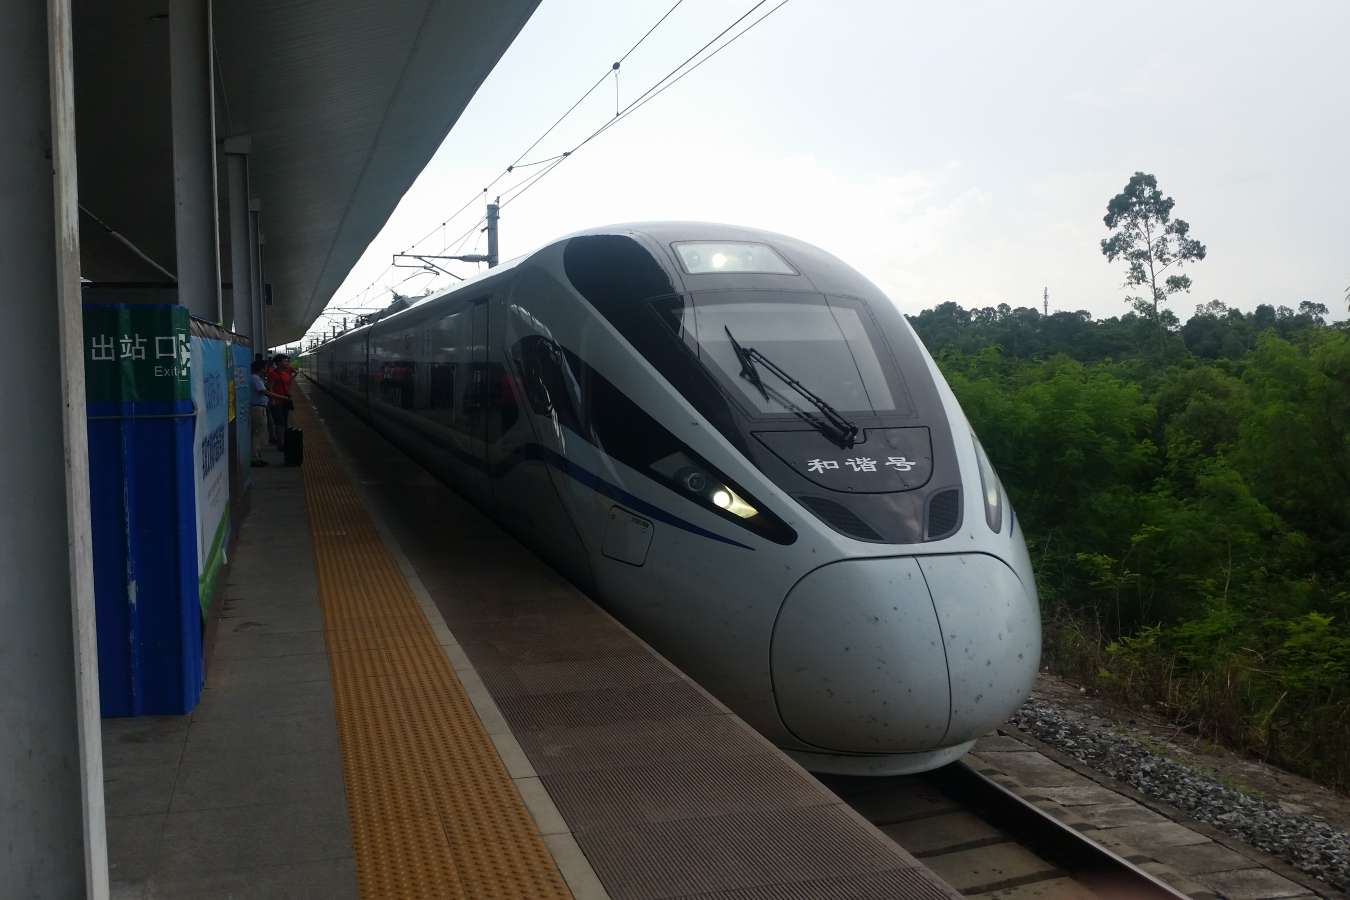 Ctrip booking train tickets in China